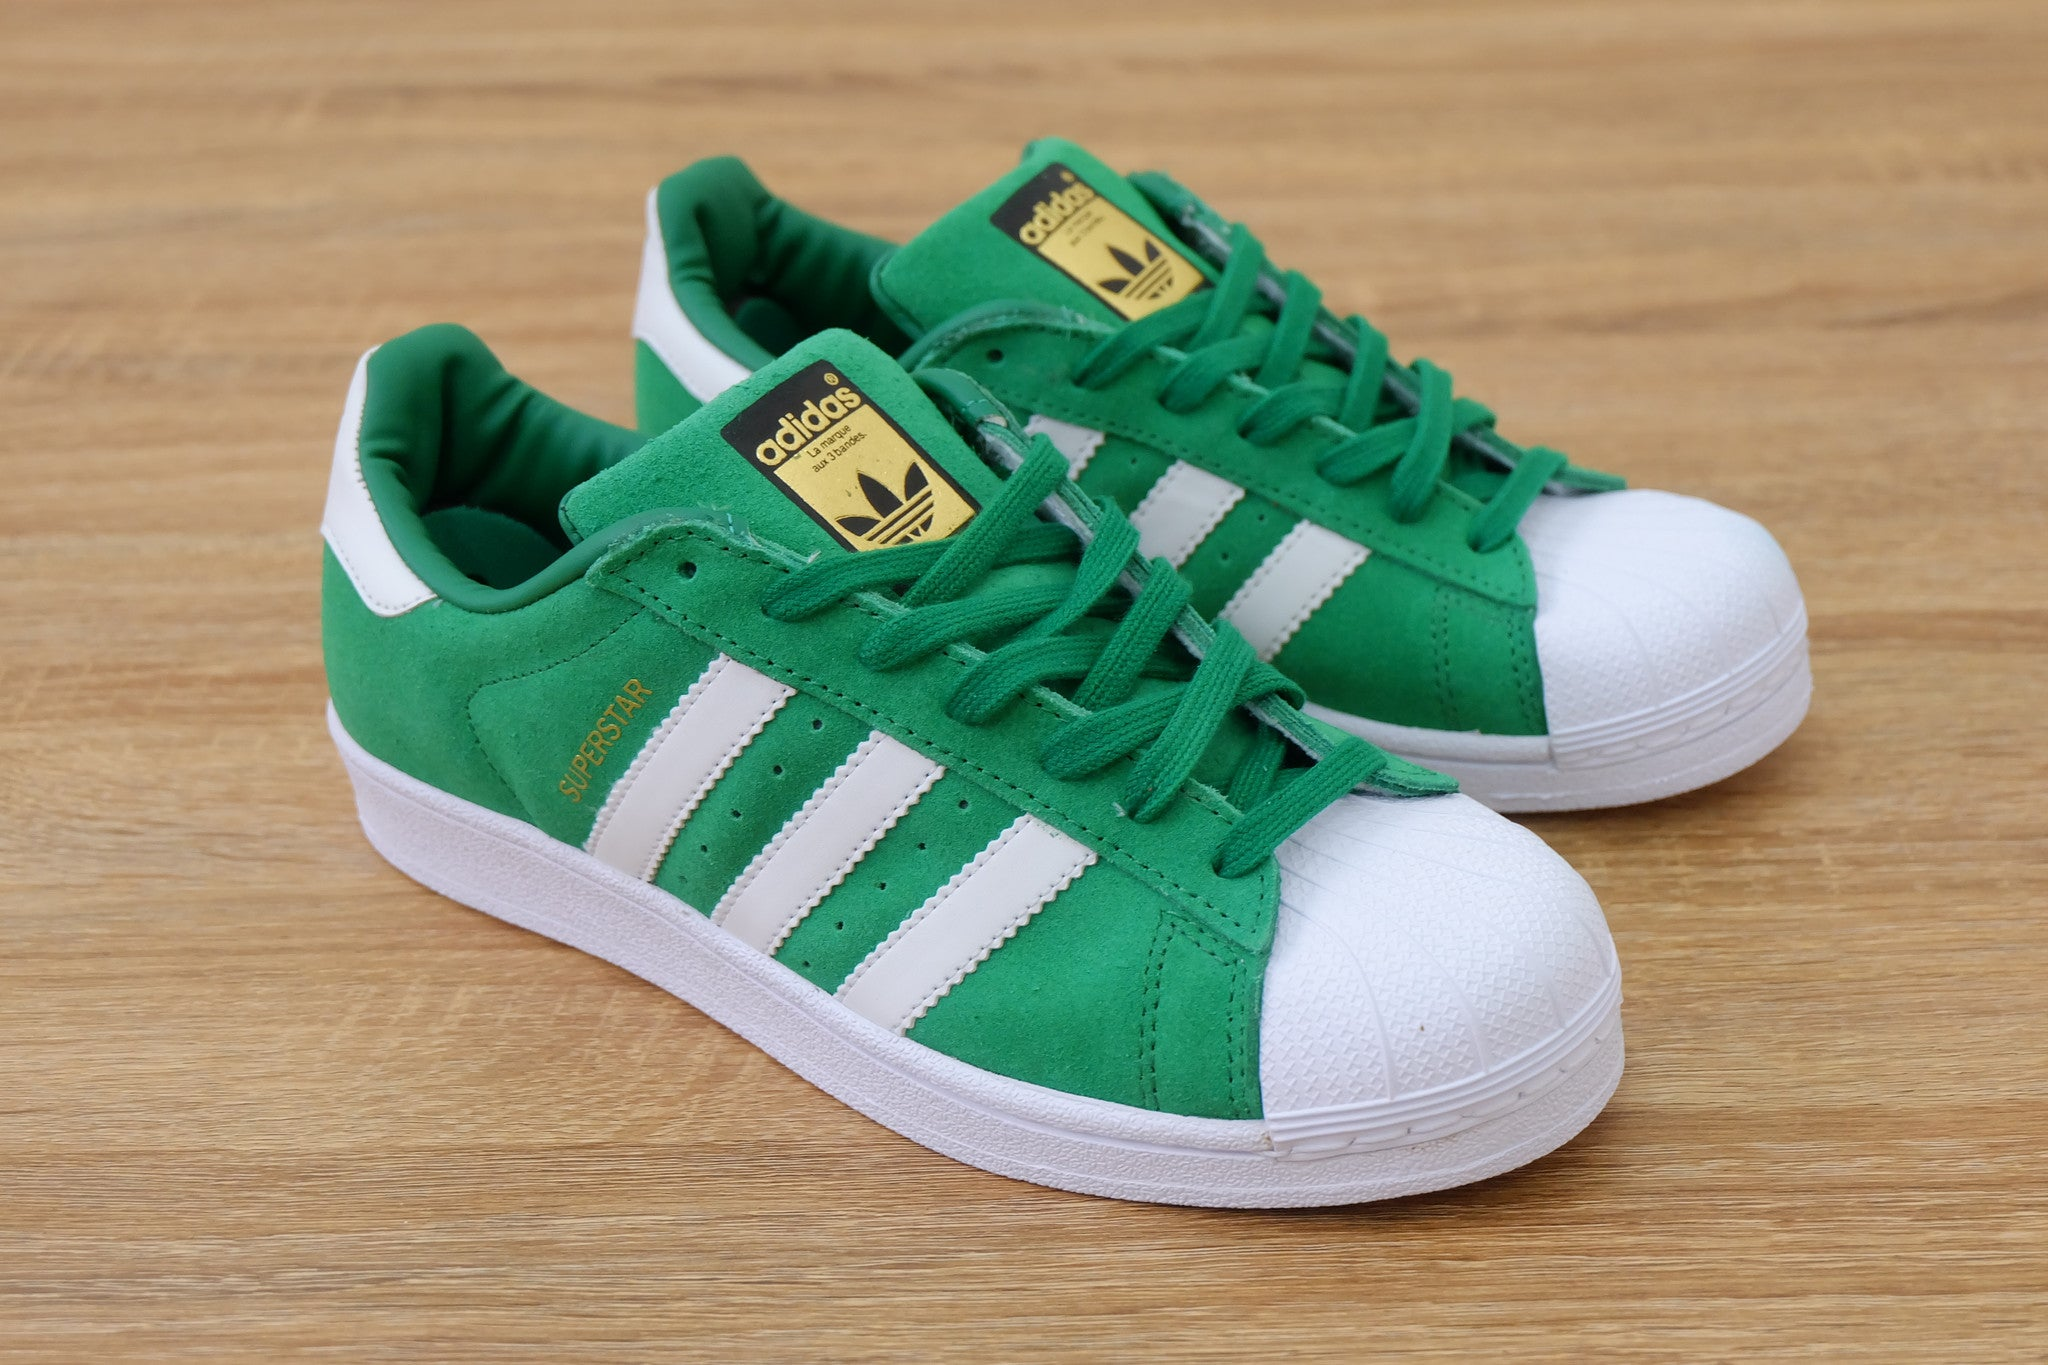 Adidas Superstar Suede Green